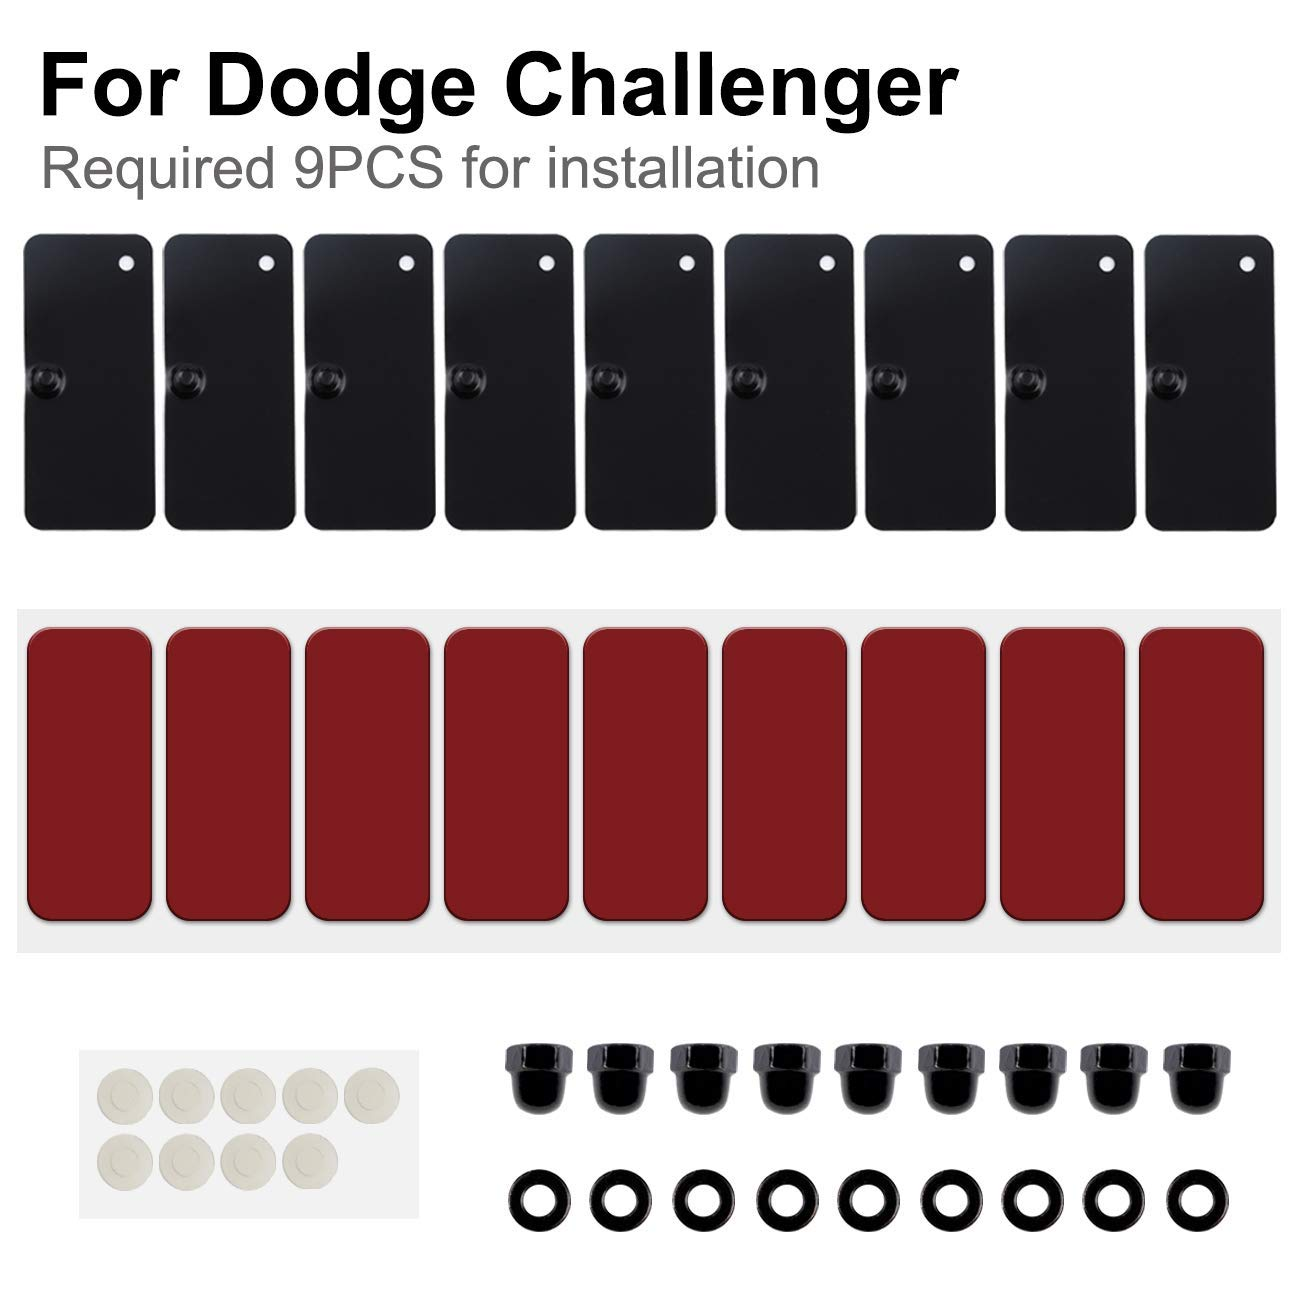 Sunluway for Ford Mustang Dodge Challenger and Camaro Rear Window Louvers Scoop Louvers Installation Hardware Accessories